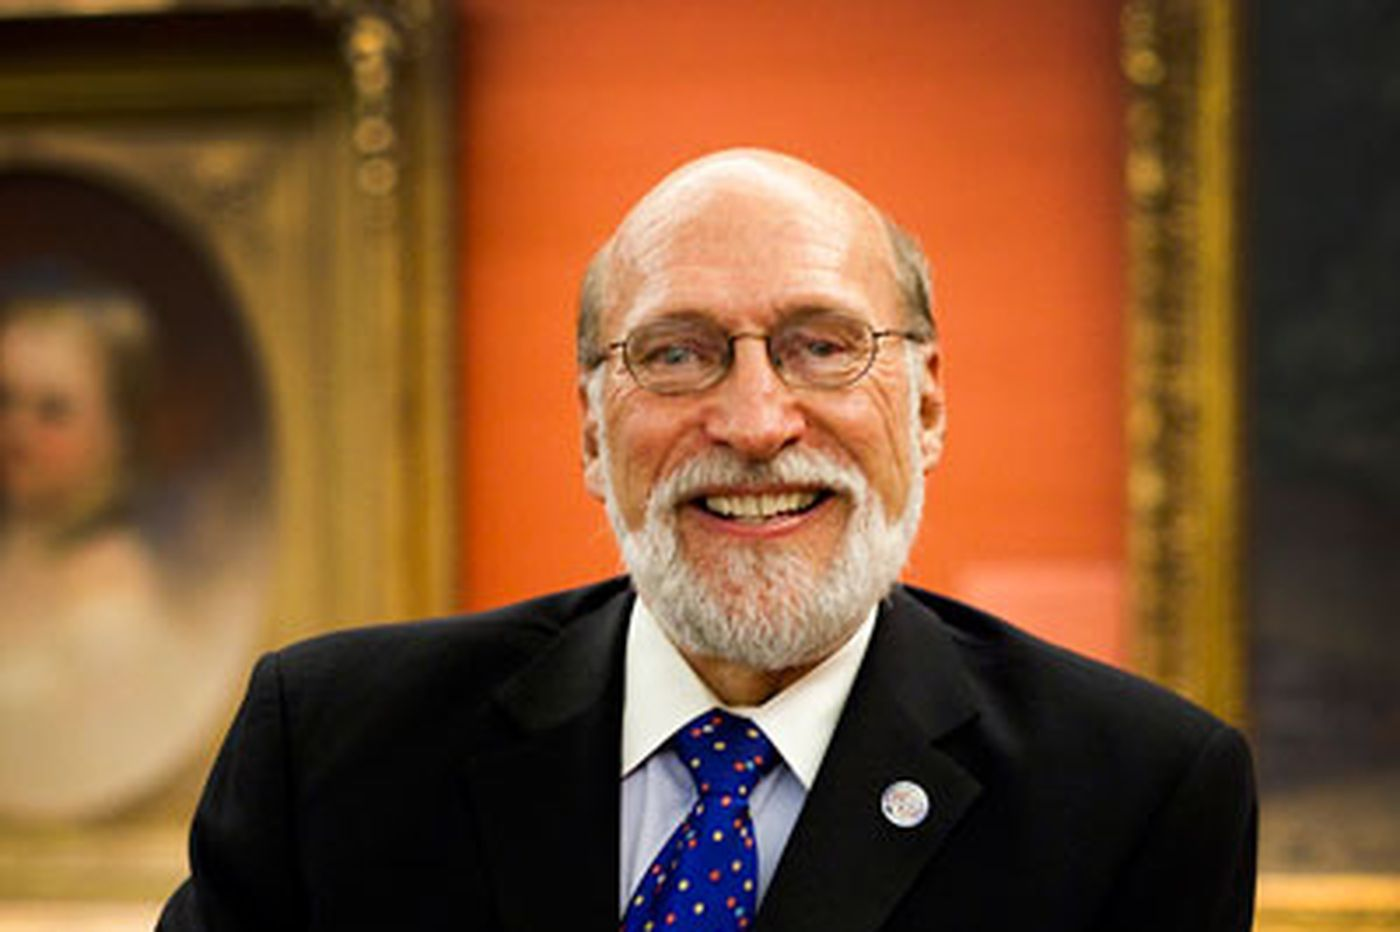 Thomas J. Hindelang, 68, vice dean of Drexel's LeBow College of Business